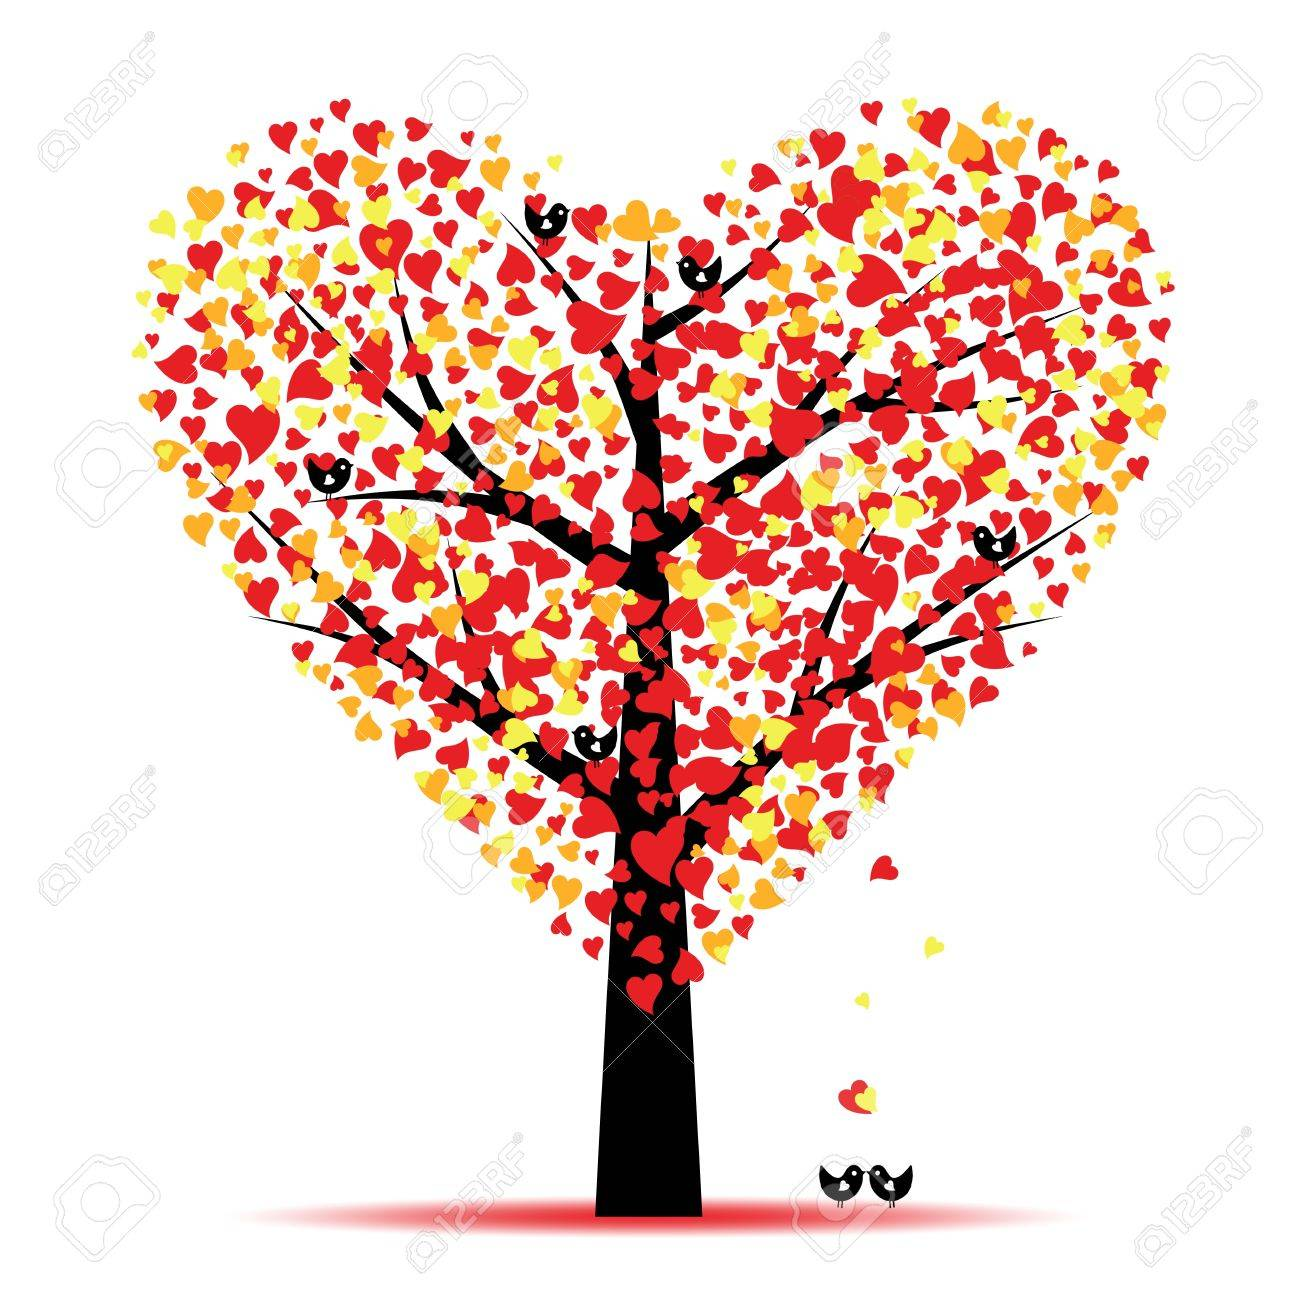 Valentine tree with hearts leaves and birds Stock Vector - 11863201